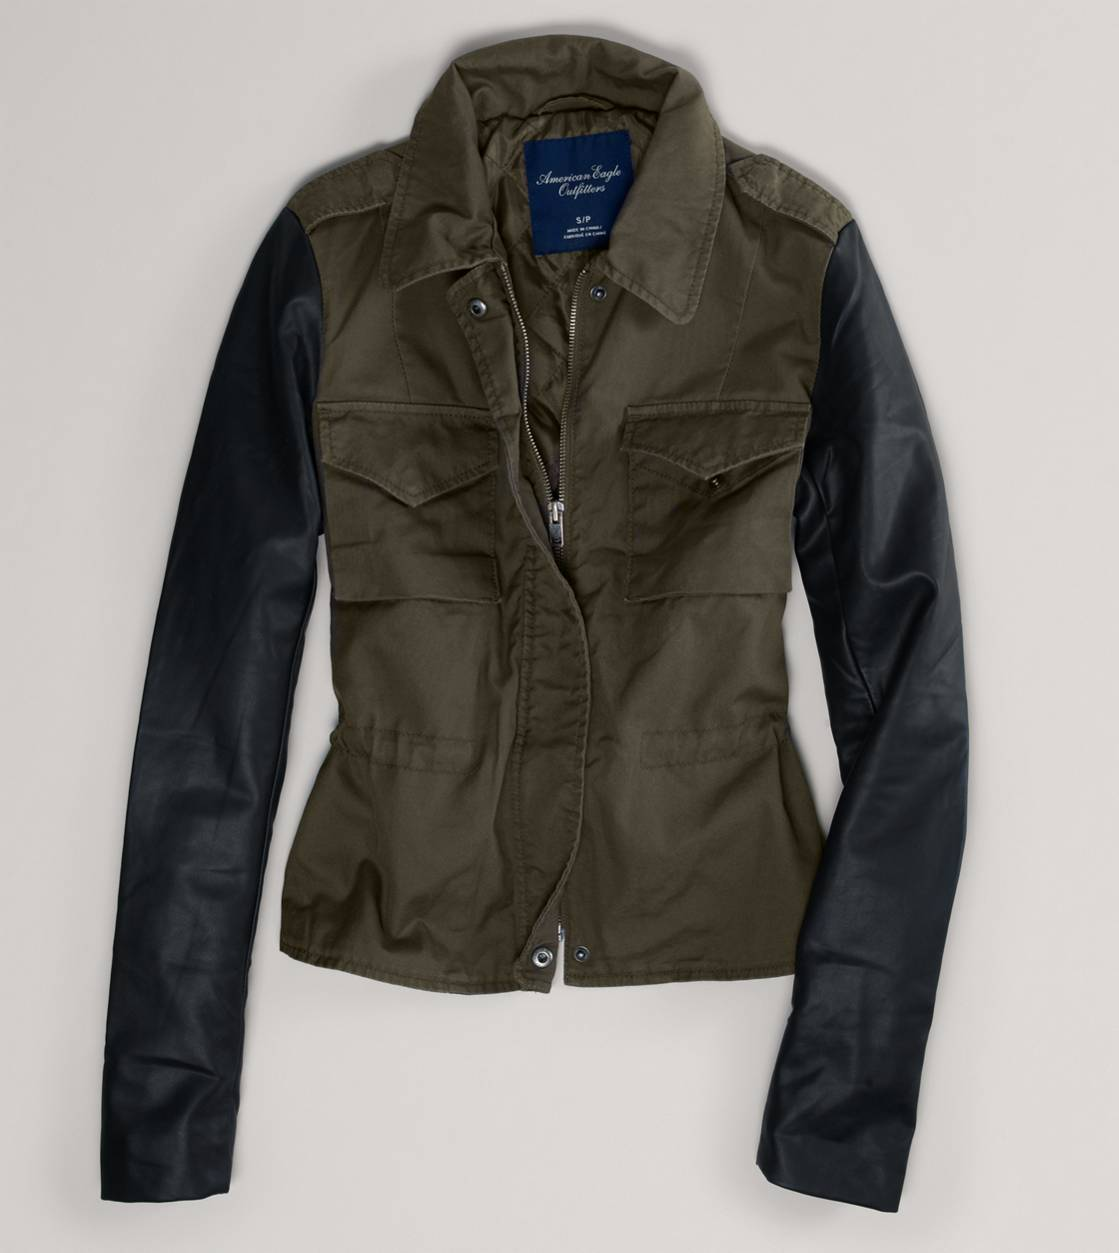 Browse our stylish leather bomber jackets today. Our motorcycle bomber jackets are available in different colors, styles, and designs. Having a durable leather jacket can keep small debris from hurting as you ride as well as providing warmth in colder areas.